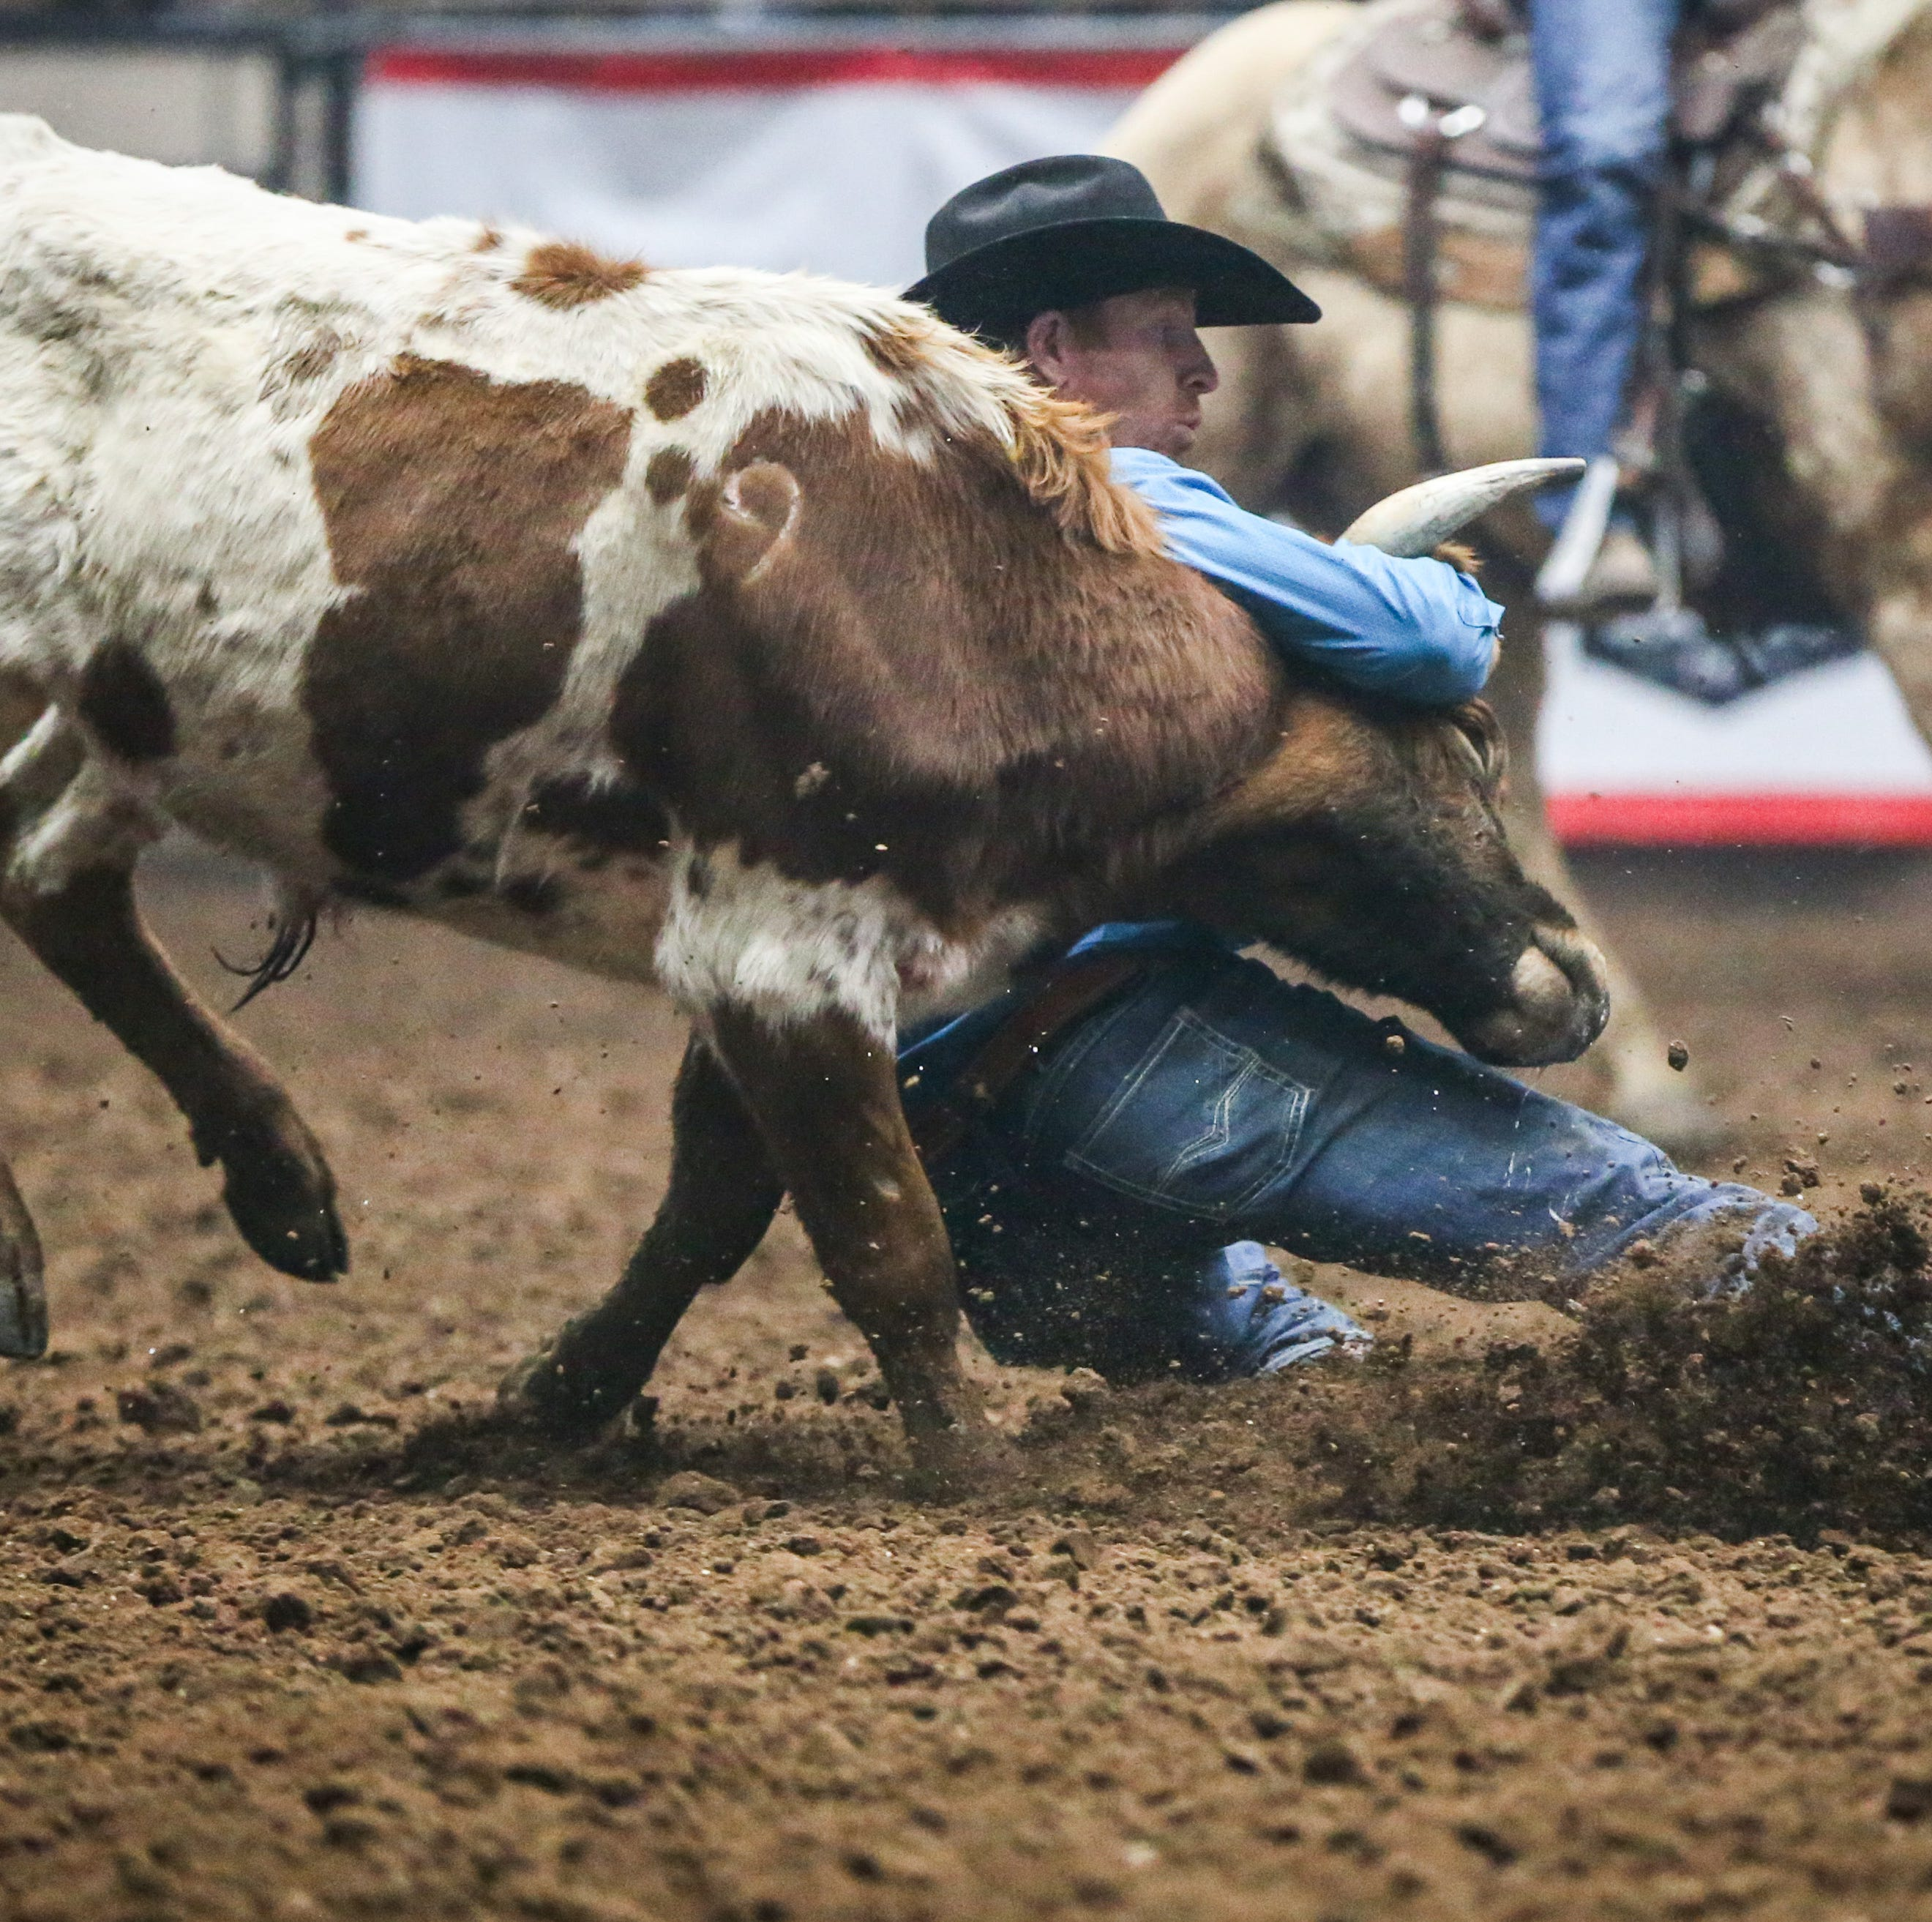 First-timer wins steer wrestling at San Angelo's Cinch Chute-Out